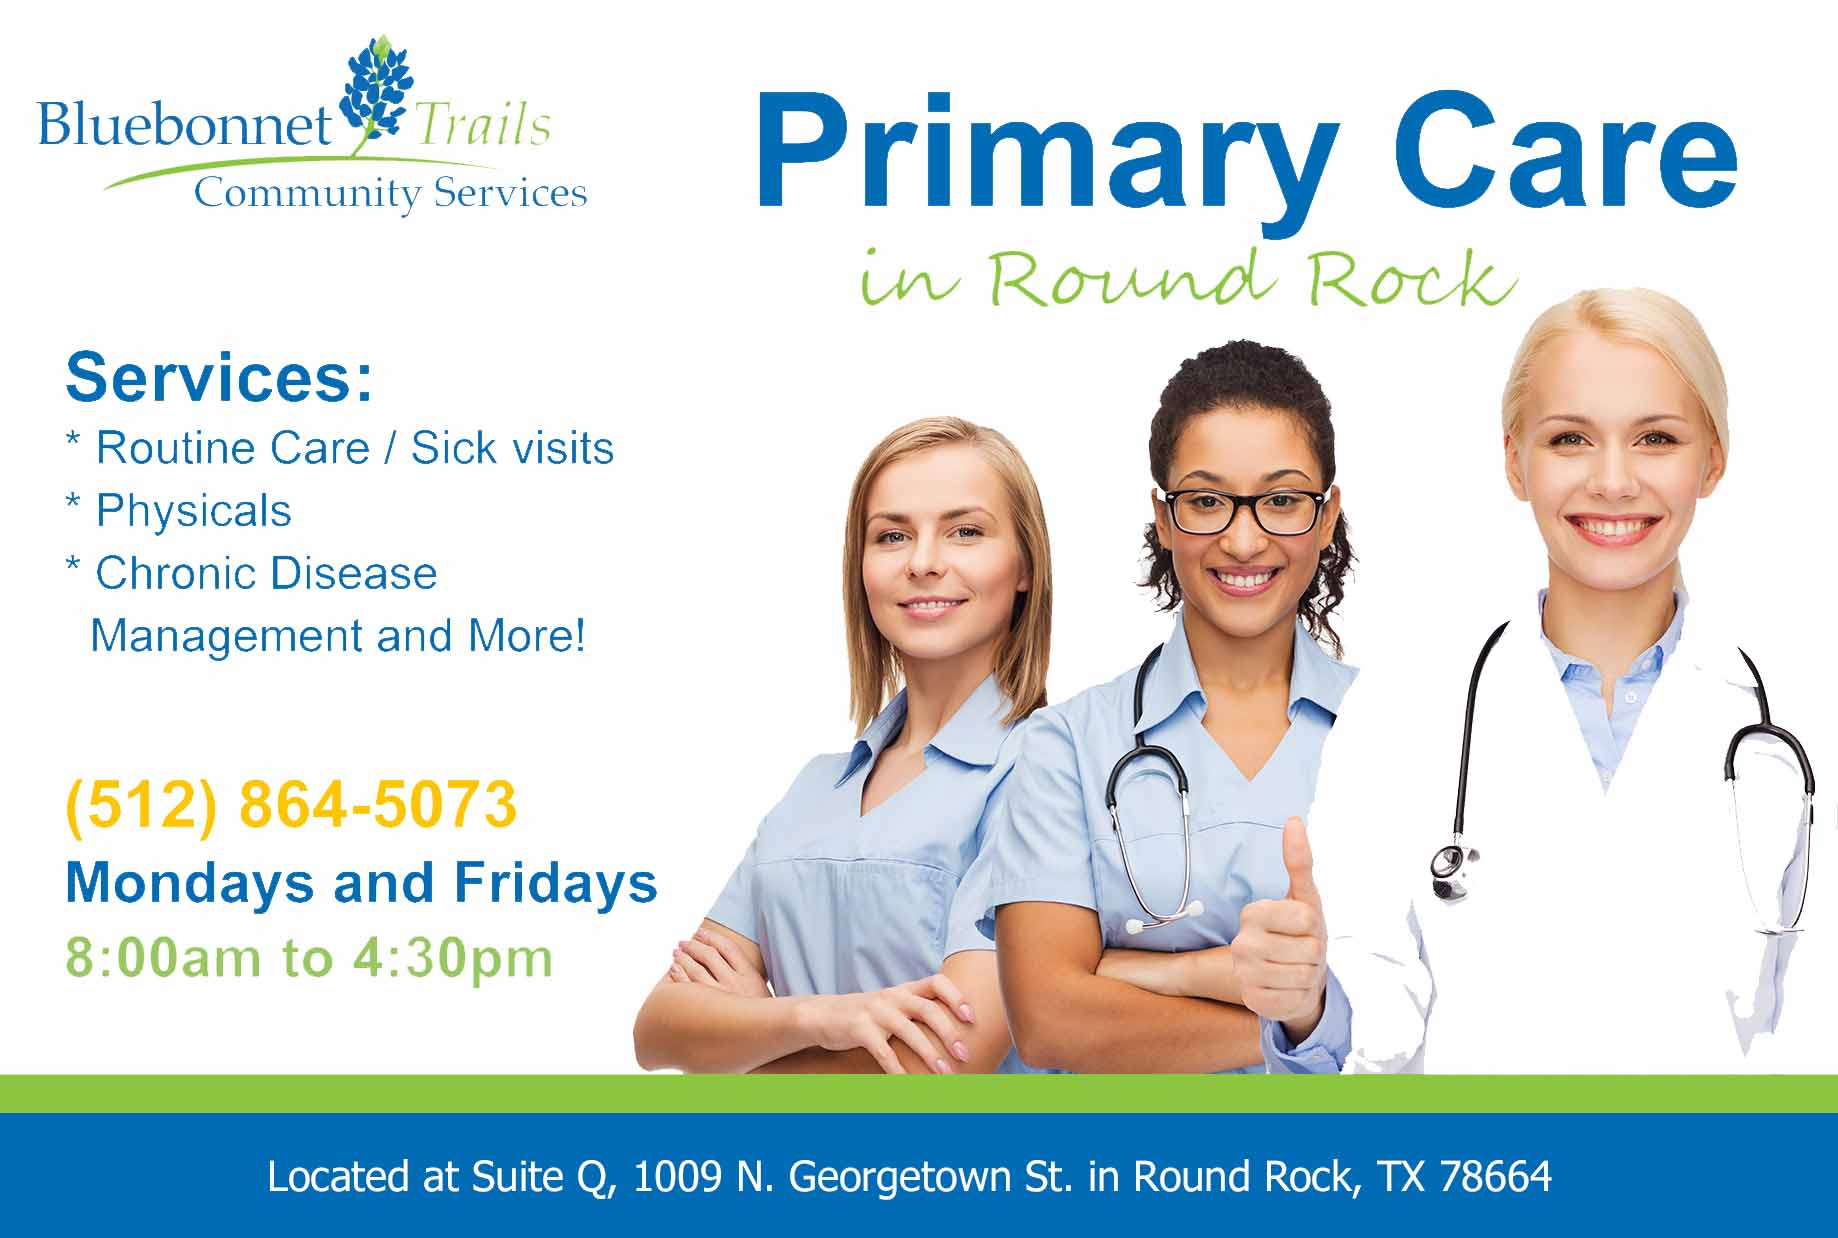 Primary%20Care%20Flyer%20RR%20%20Mondays%20&%20Fridays copy